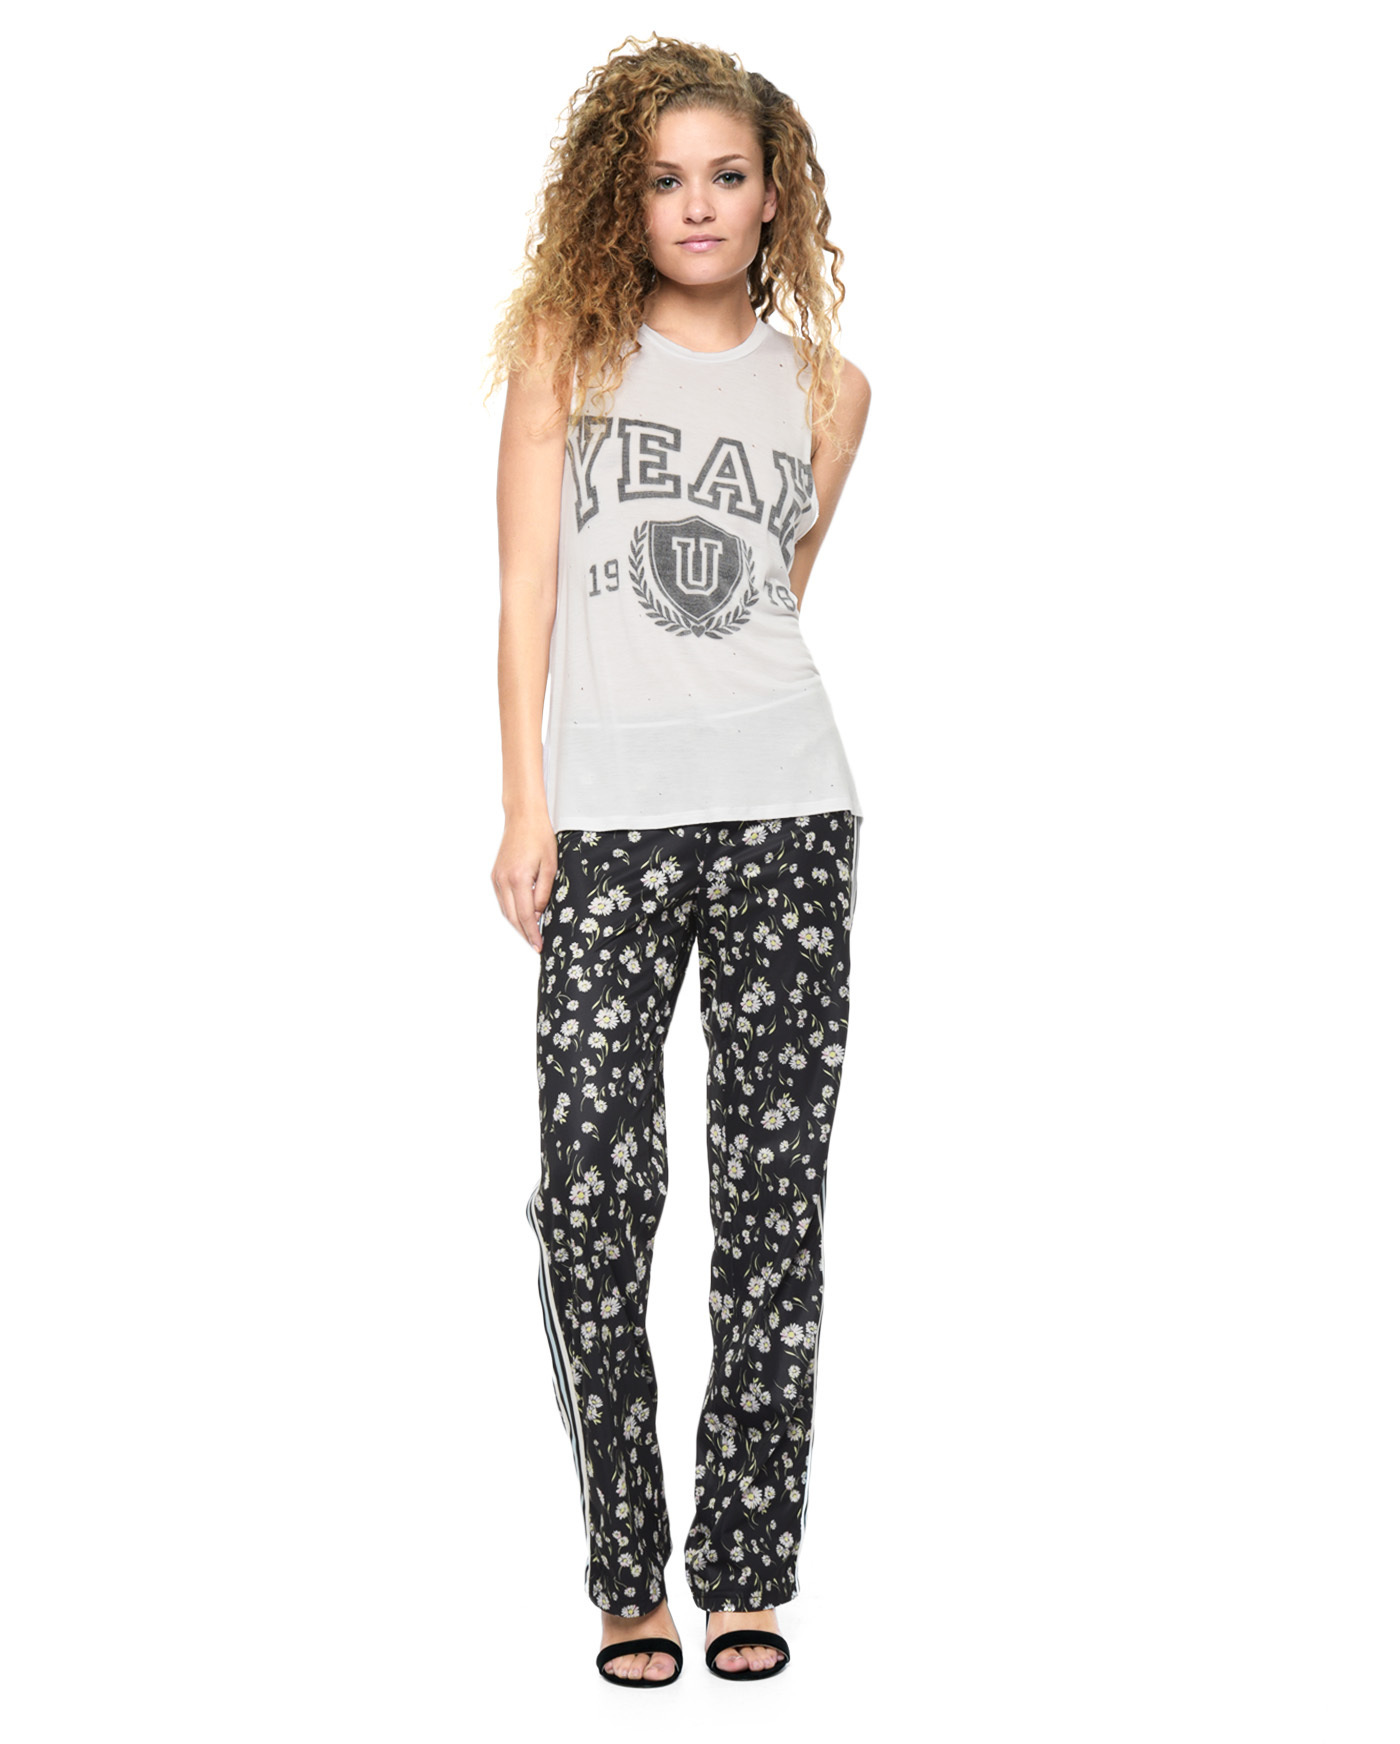 ★LA発 JUICY COUTURE YEAHプリント タンクトップ 送料無料★